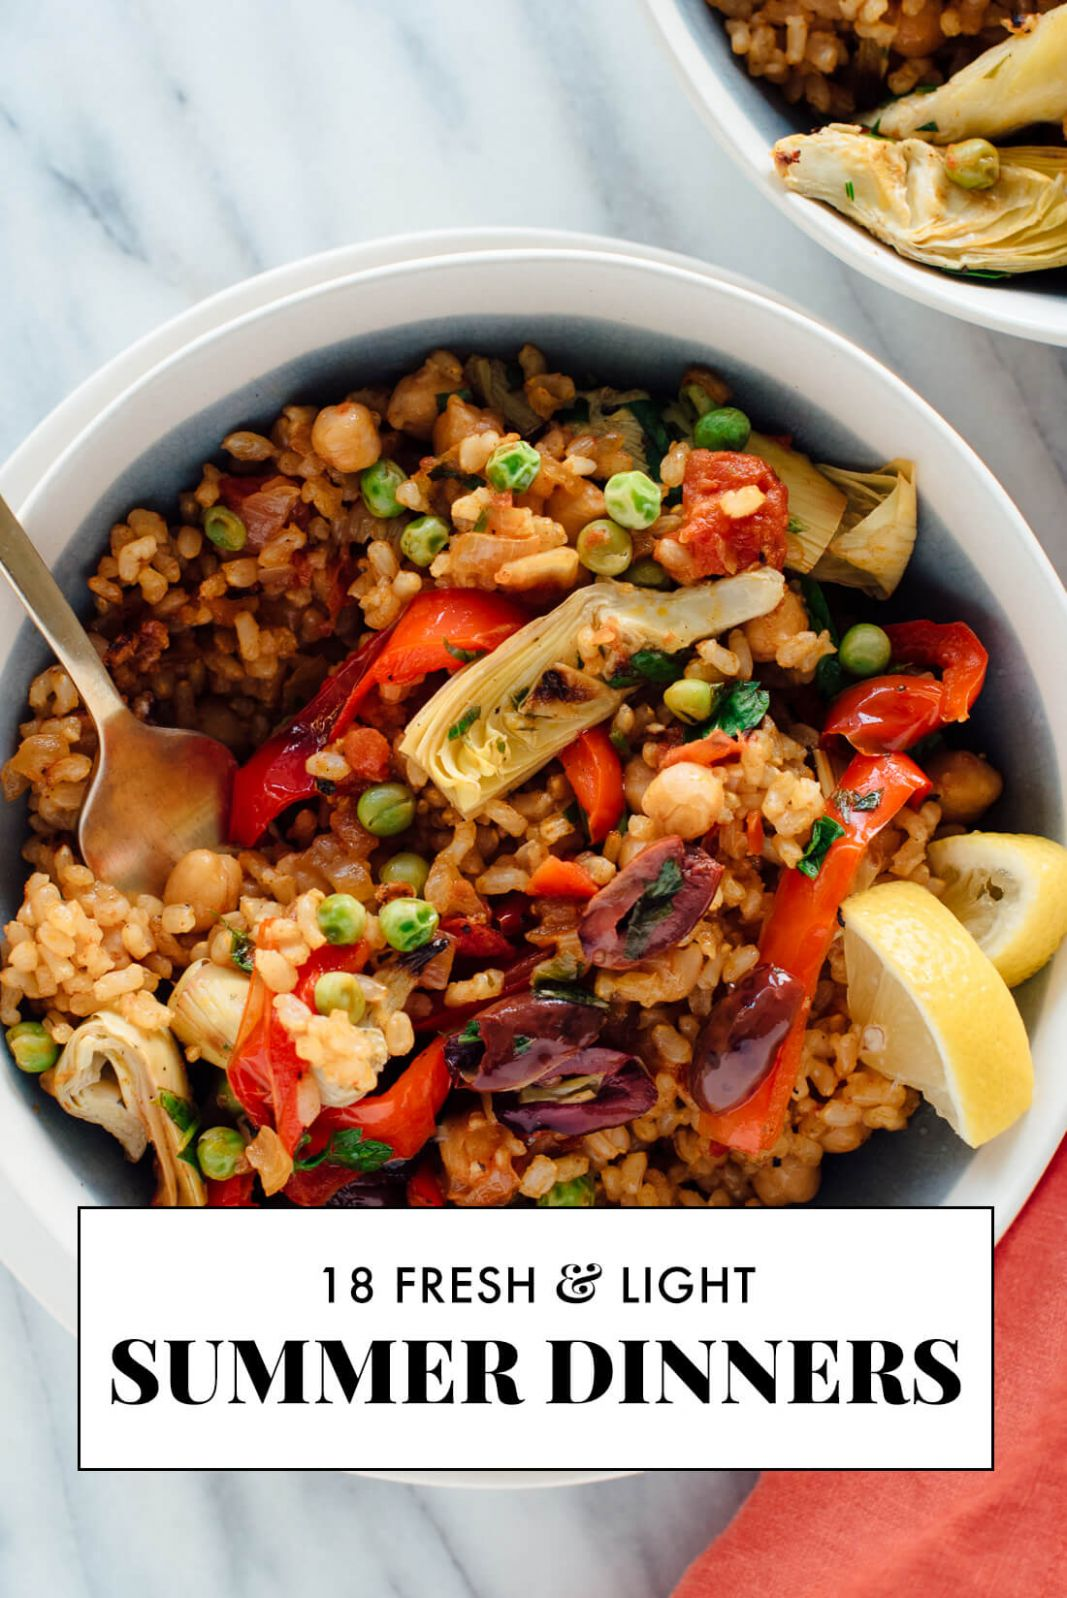 9 Light Summer Dinner Recipes - Cookie and Kate - Summer Recipes Dinner Vegetarian